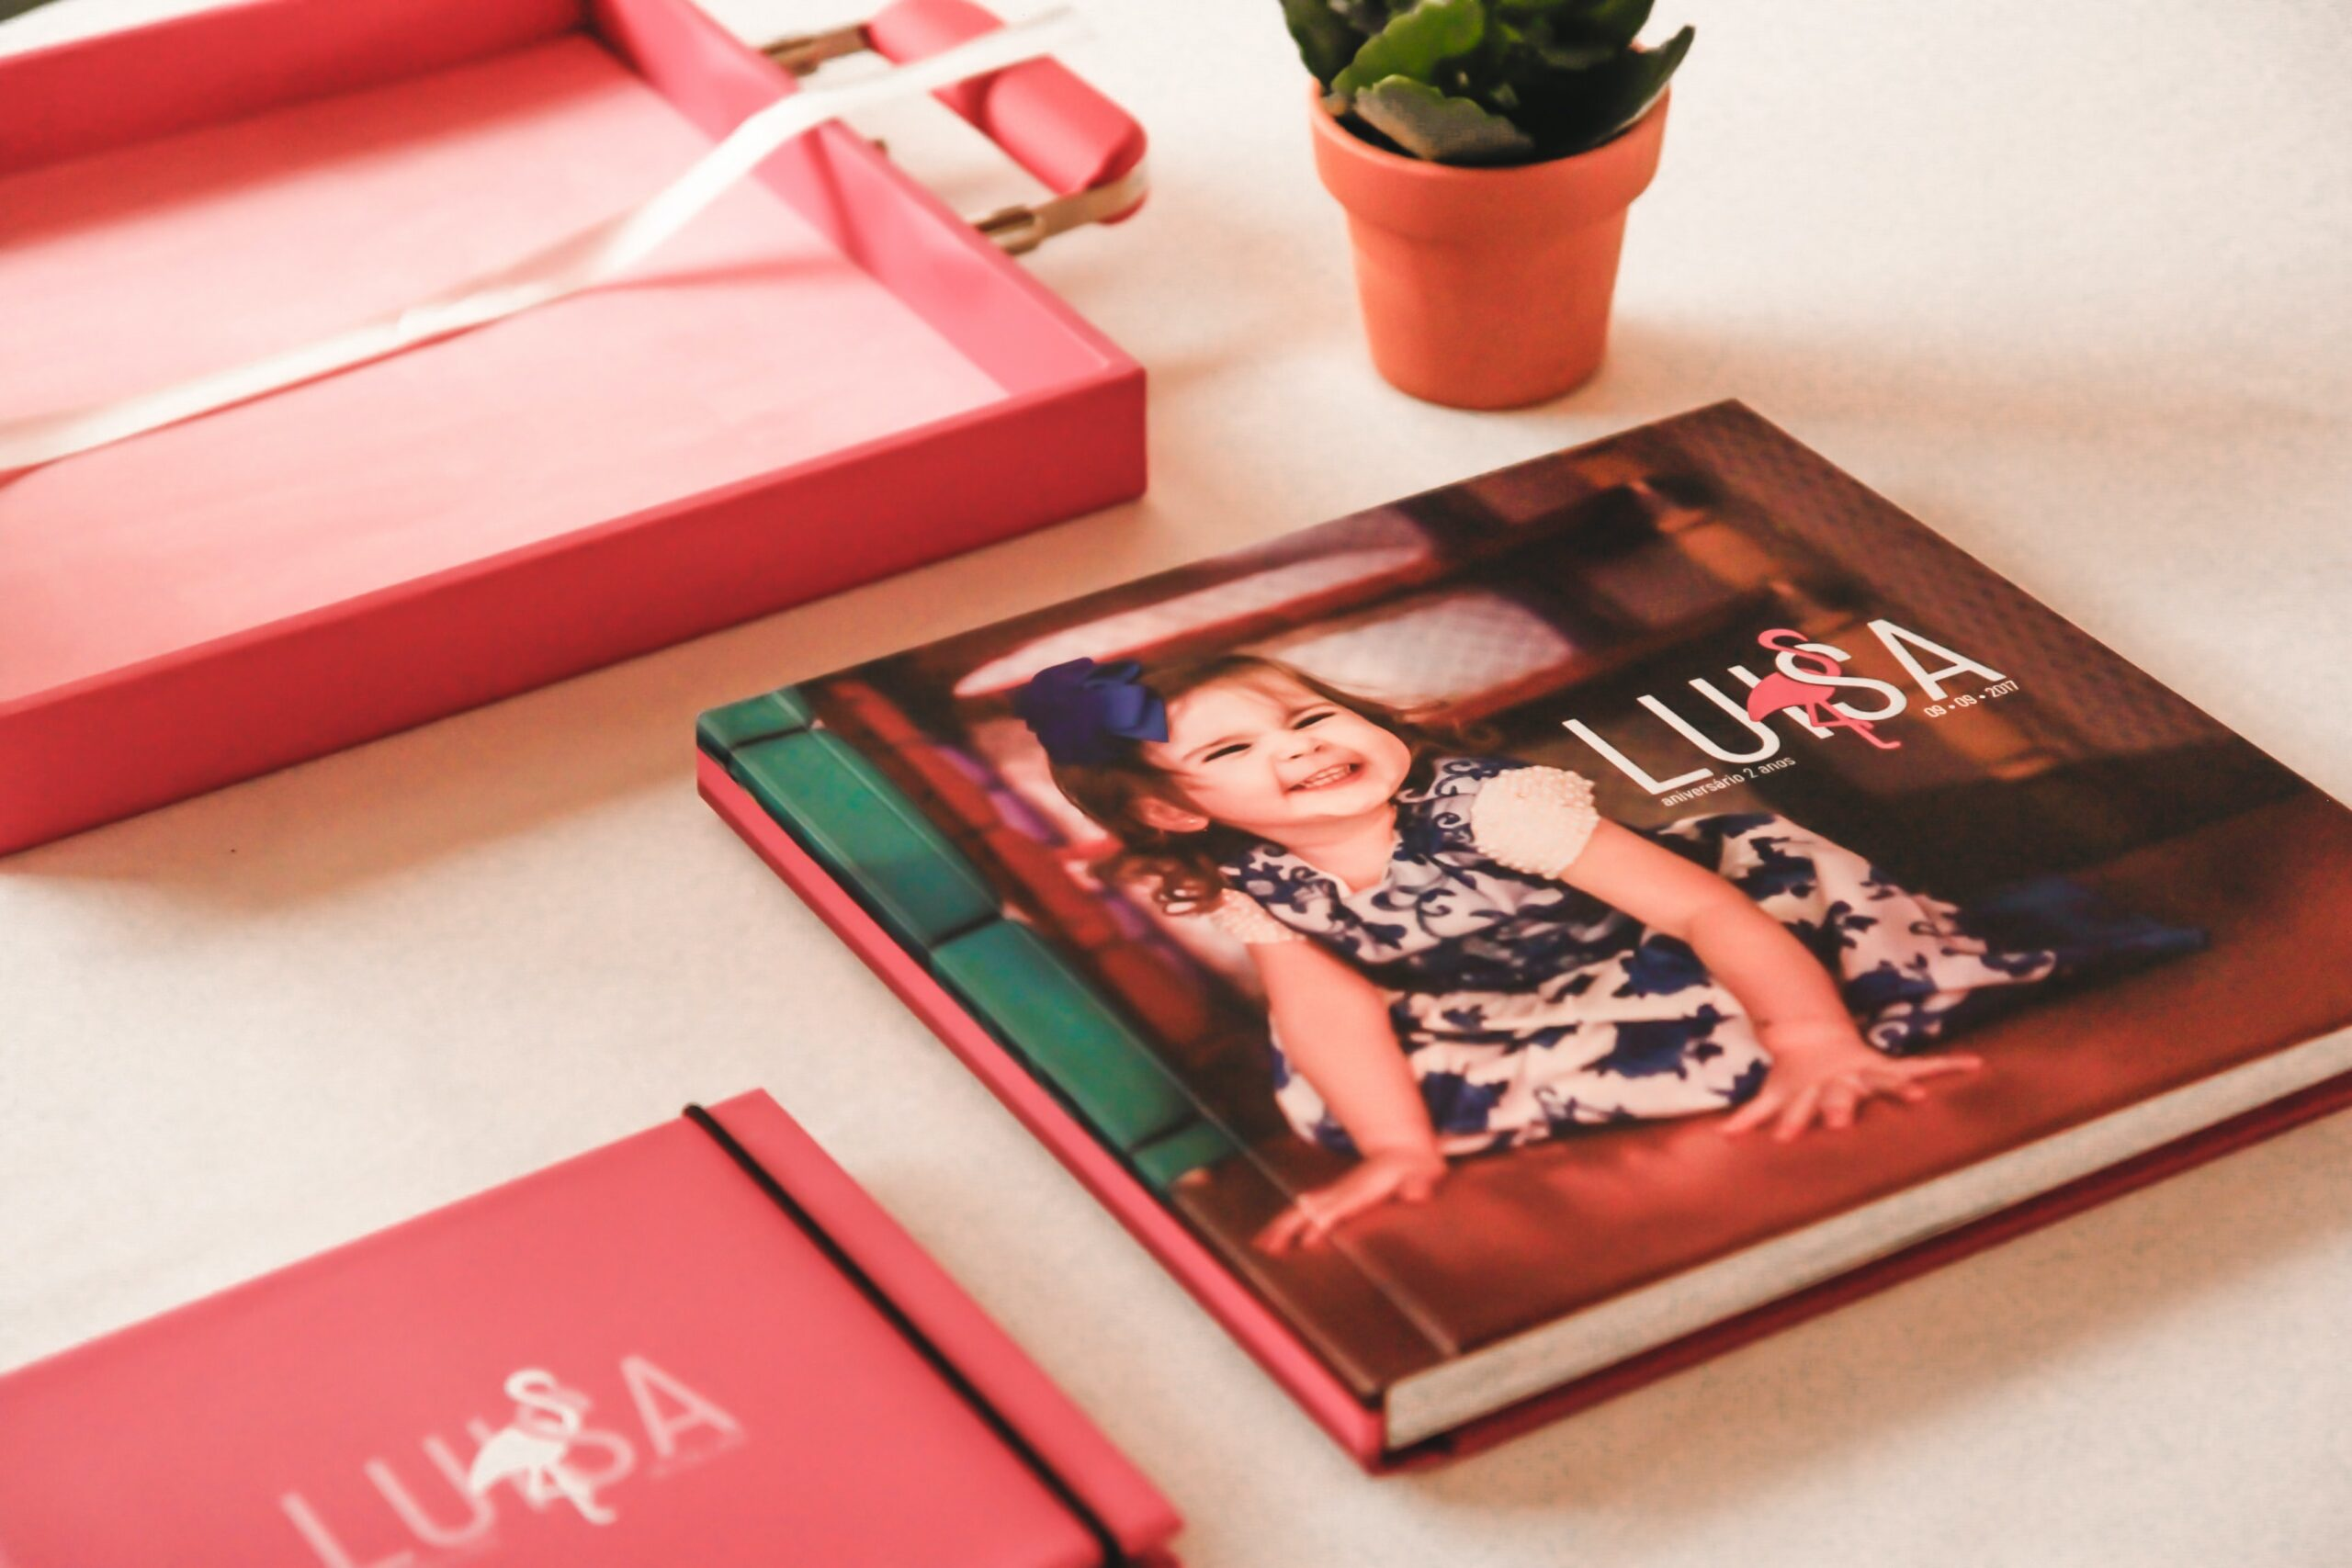 A red photo book on a white table